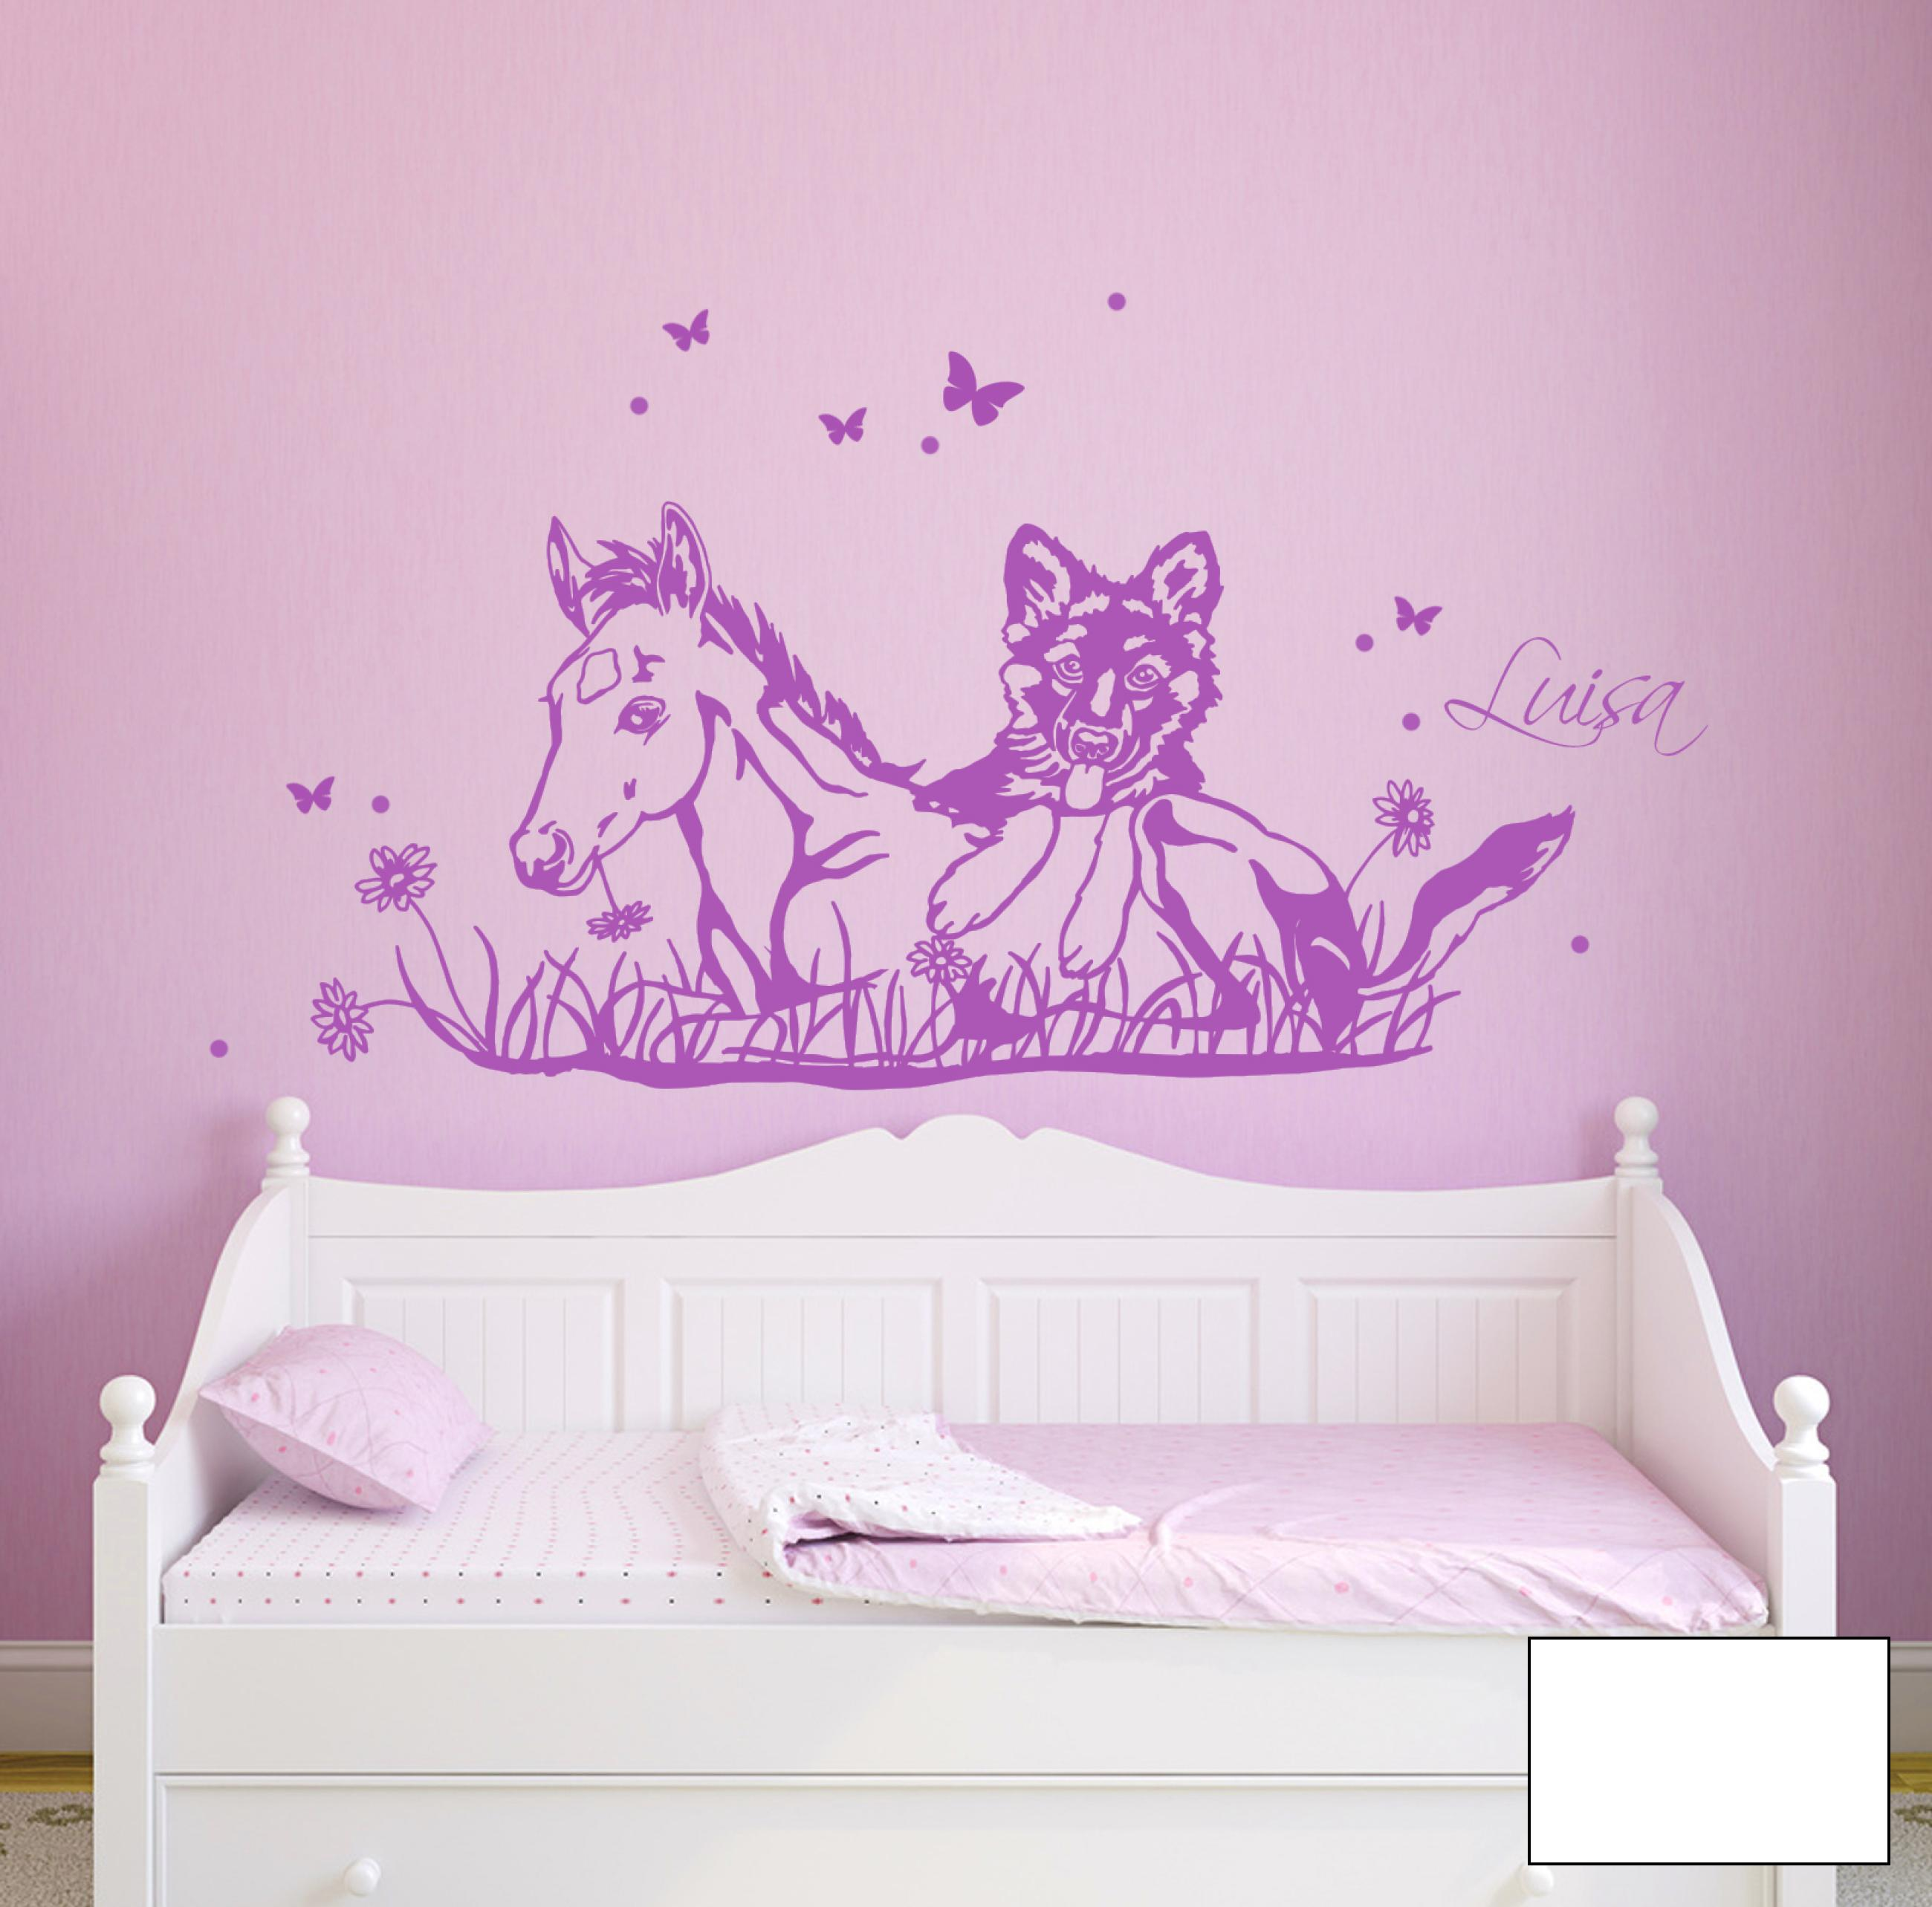 wandtattoo pferd fohlen mit hund wunschname m1630 ebay. Black Bedroom Furniture Sets. Home Design Ideas